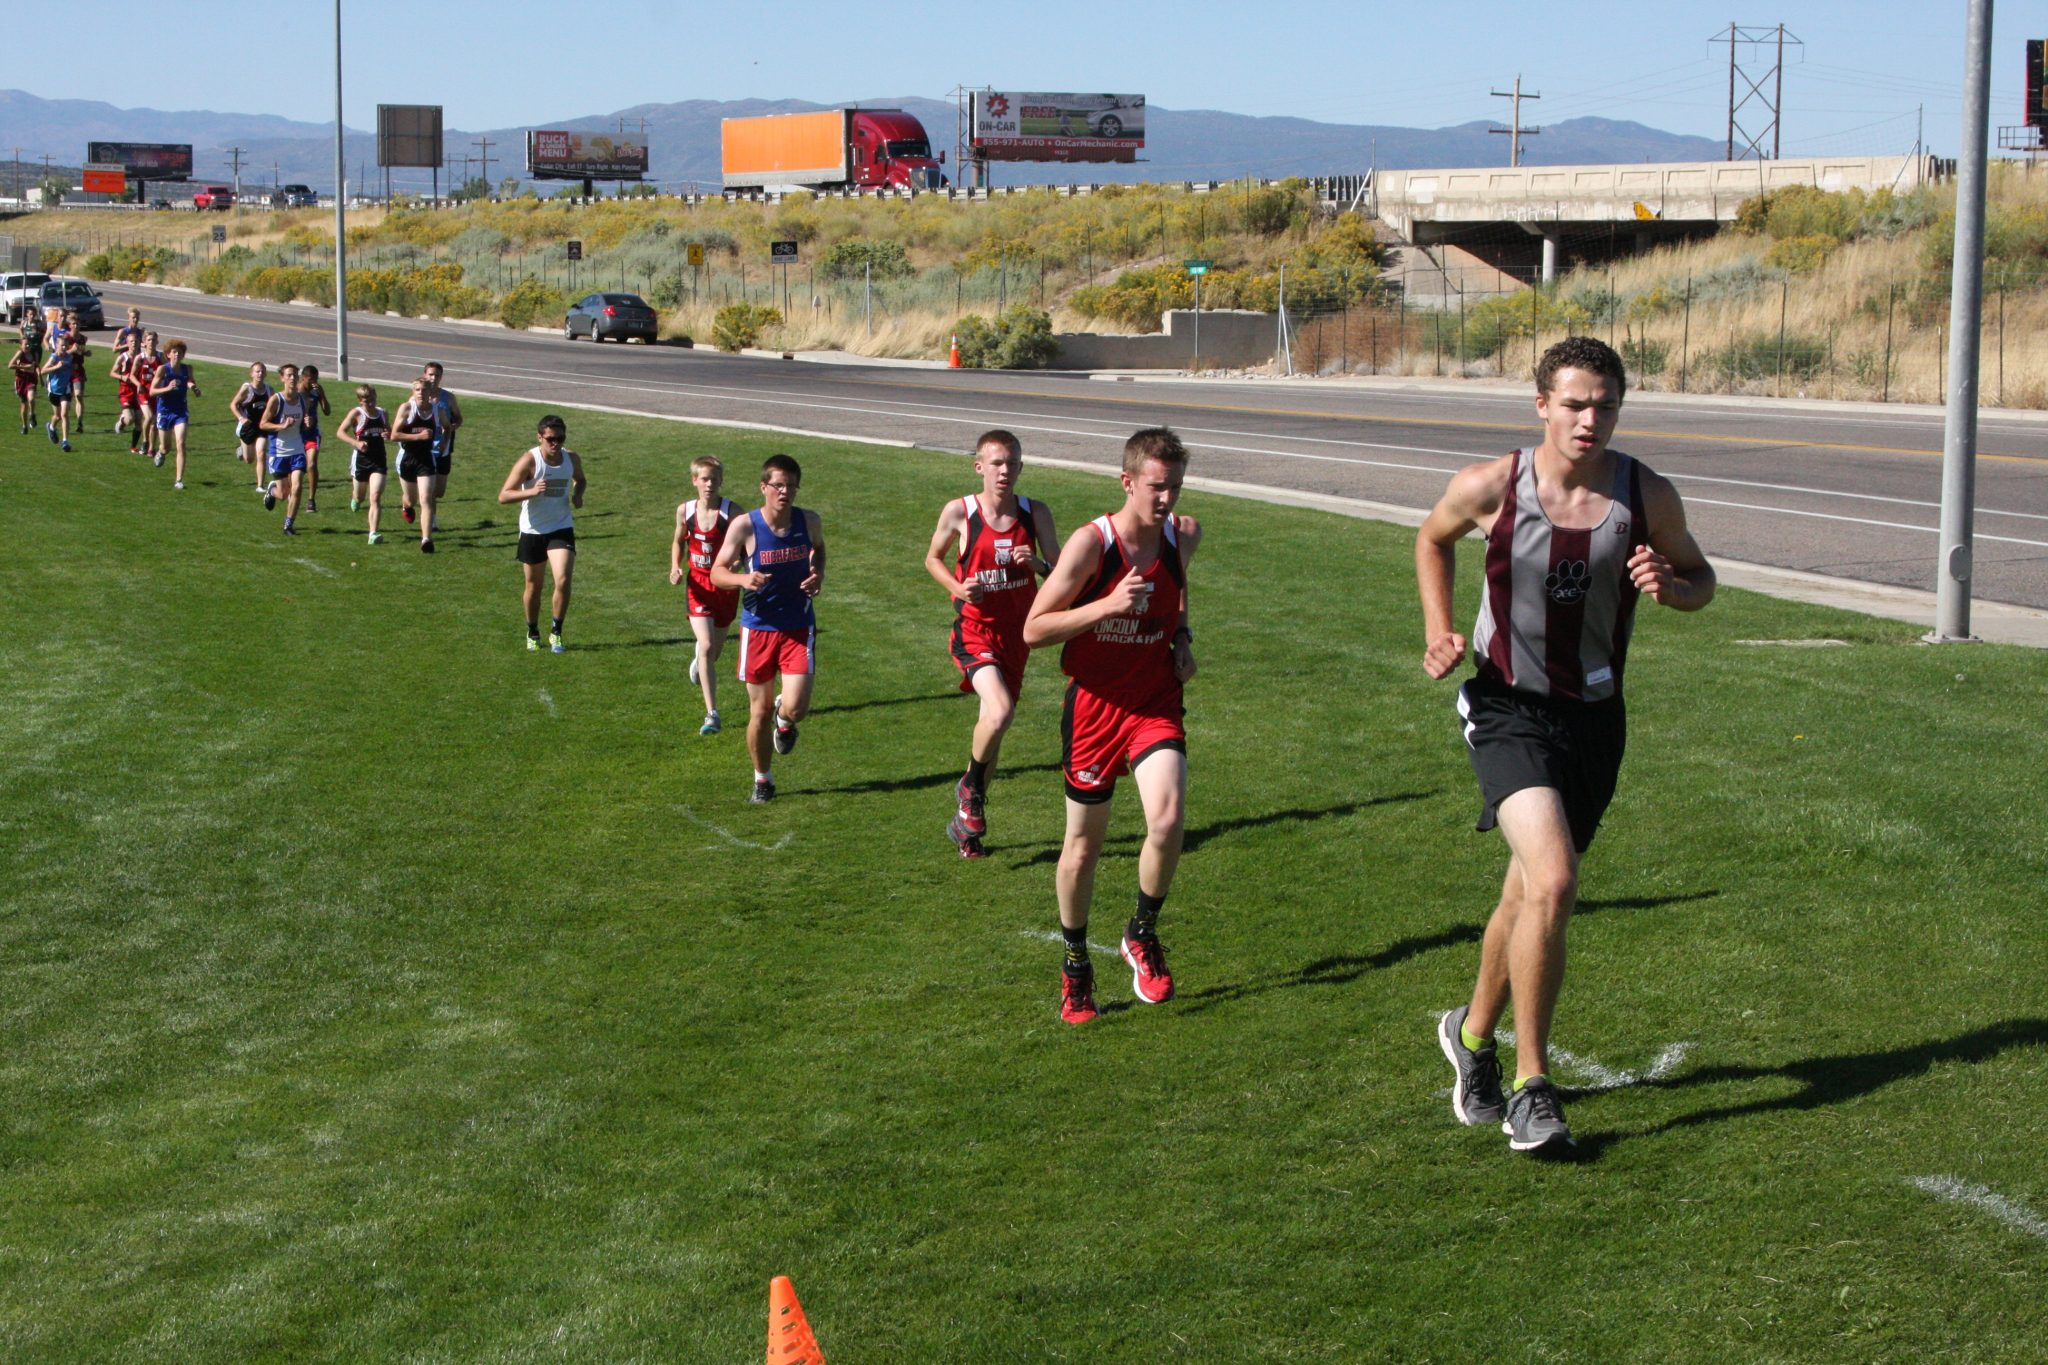 Runners continue improving times at Canyon View meet